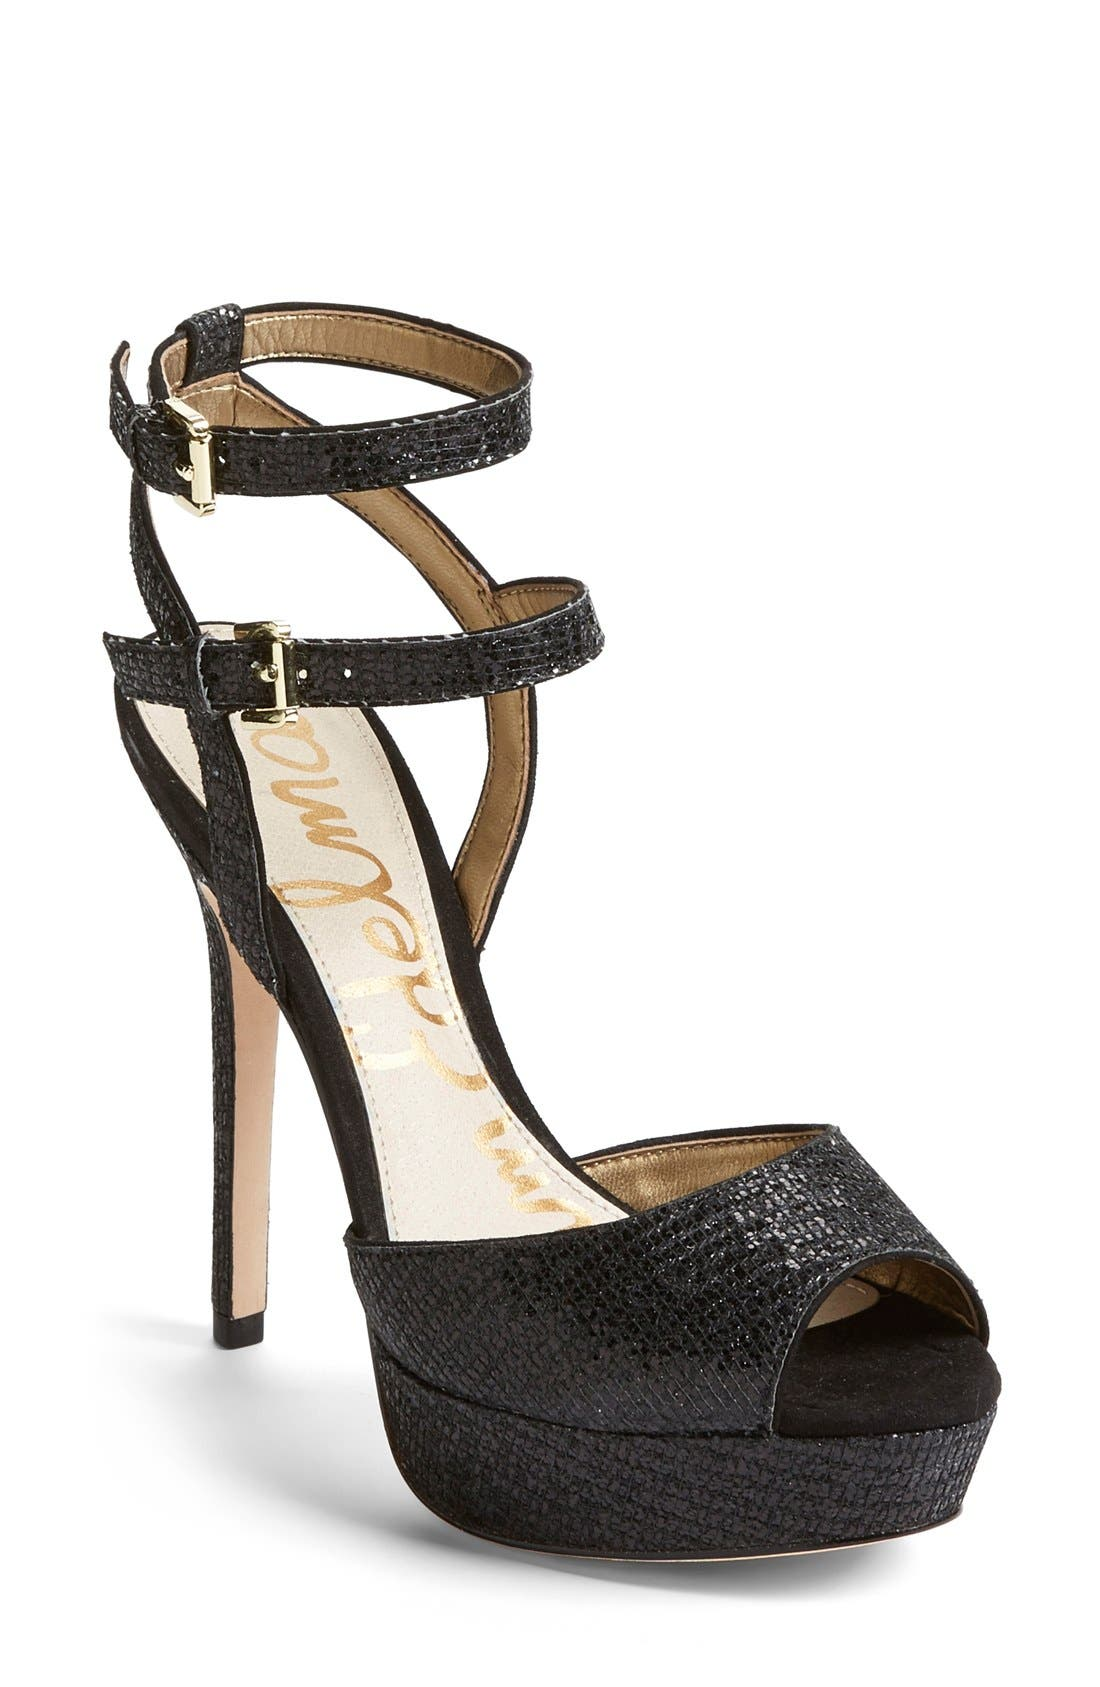 Alternate Image 1 Selected - Sam Edelman 'Nadine' Platform Sandal (Women)